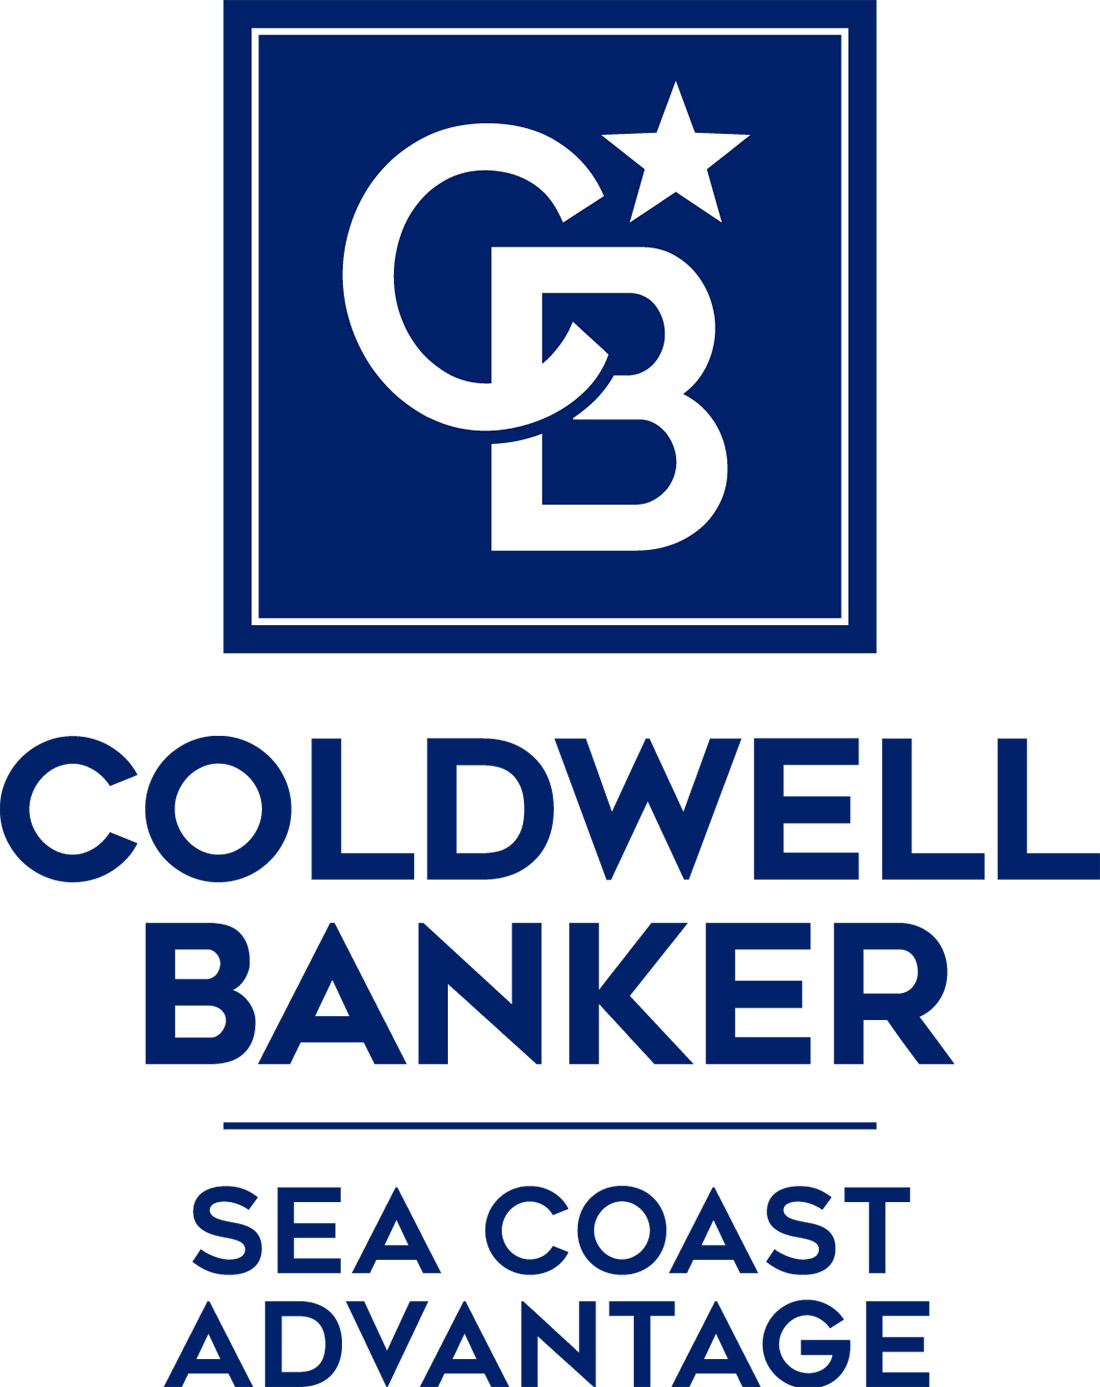 Jimmie Pendergrass - Coldwell Banker Sea Coast Advantage Realty